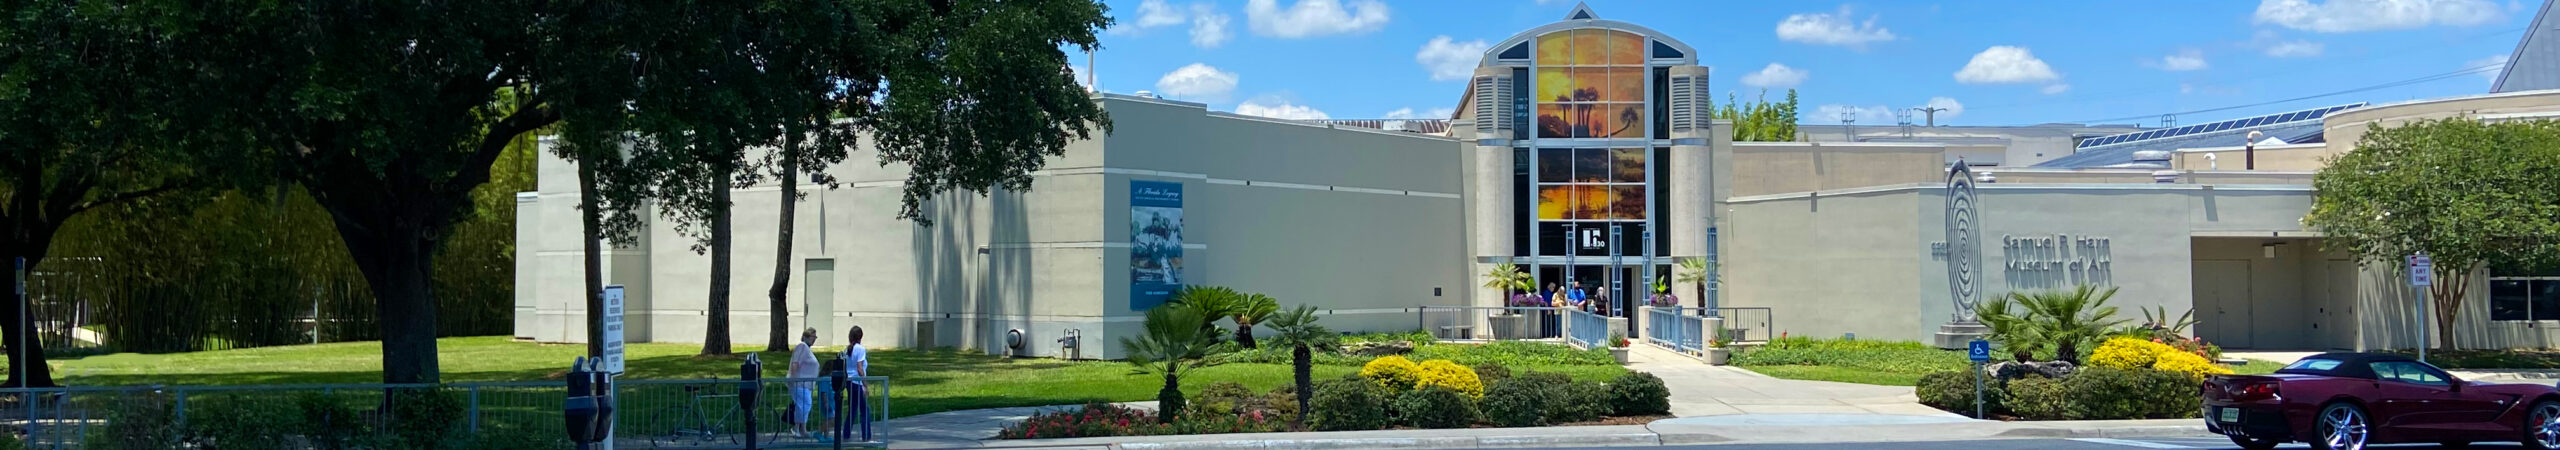 The Harn Museum of Art